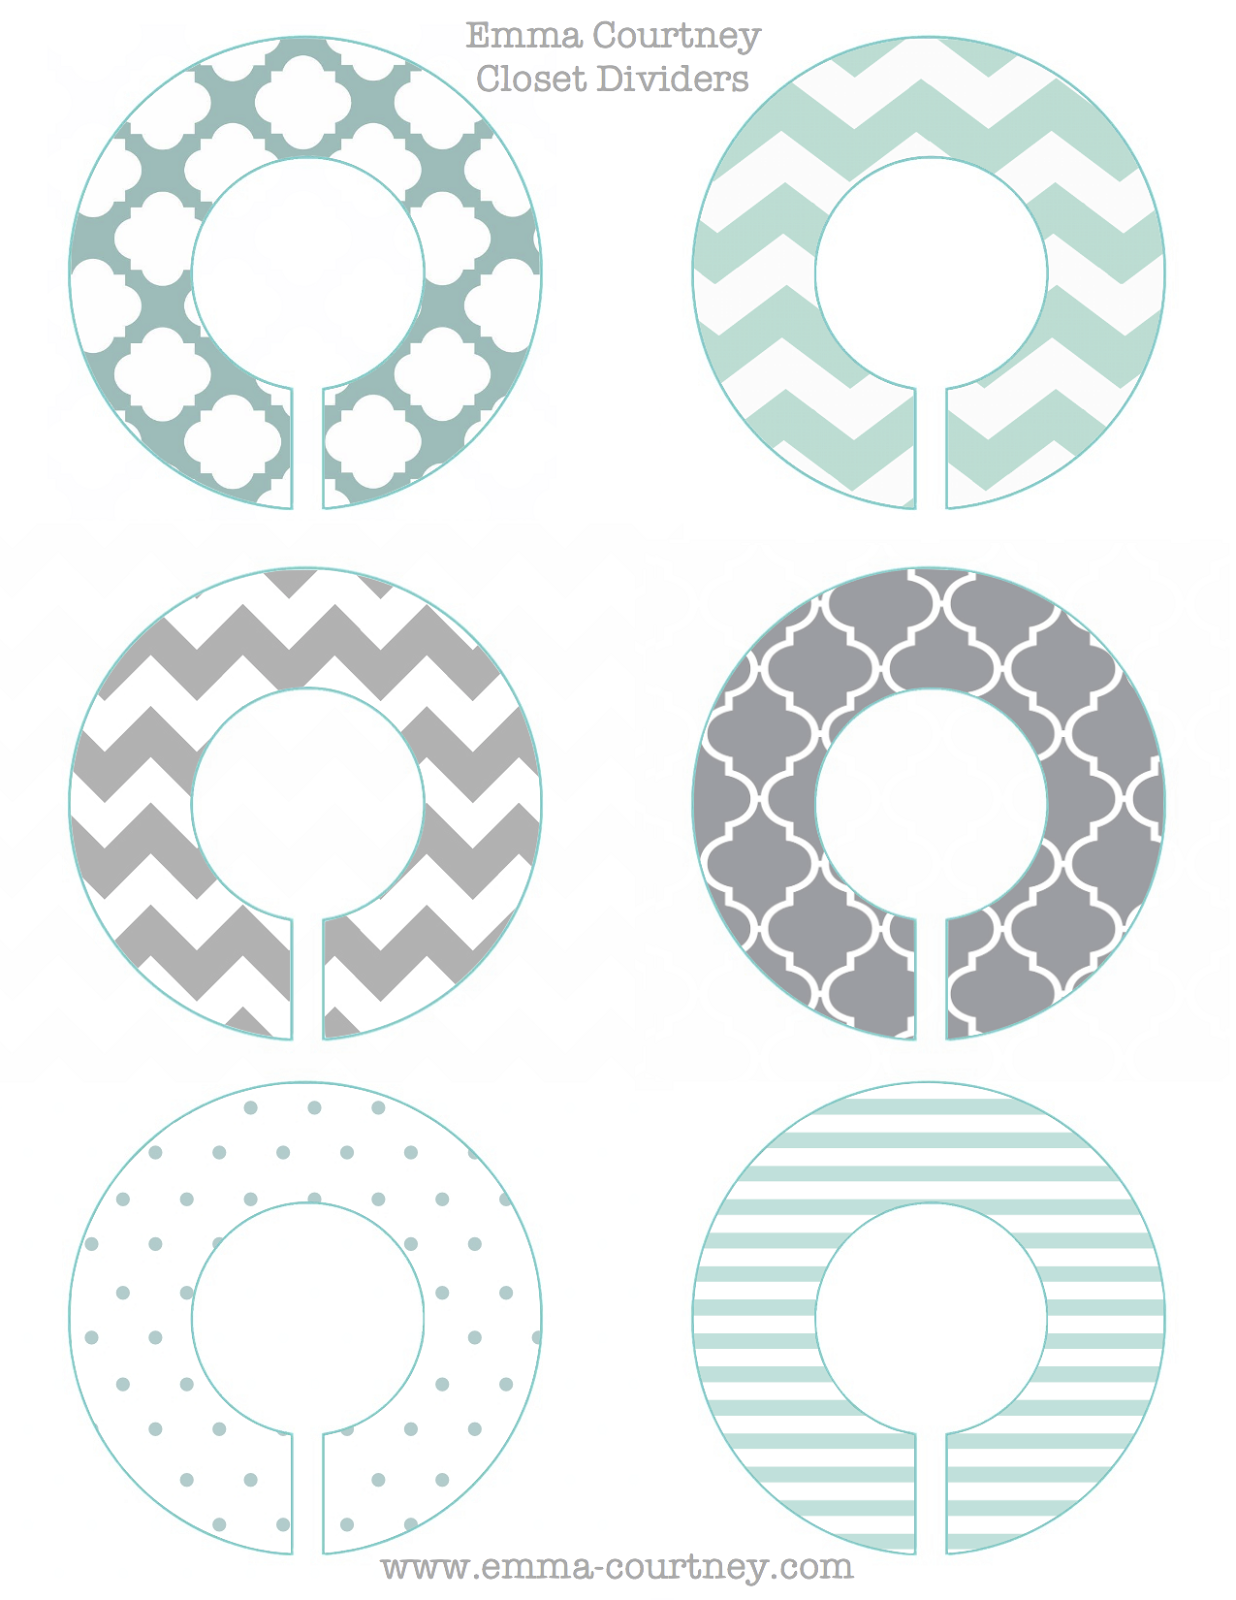 clothes divider template - emma courtney closet dividers printable